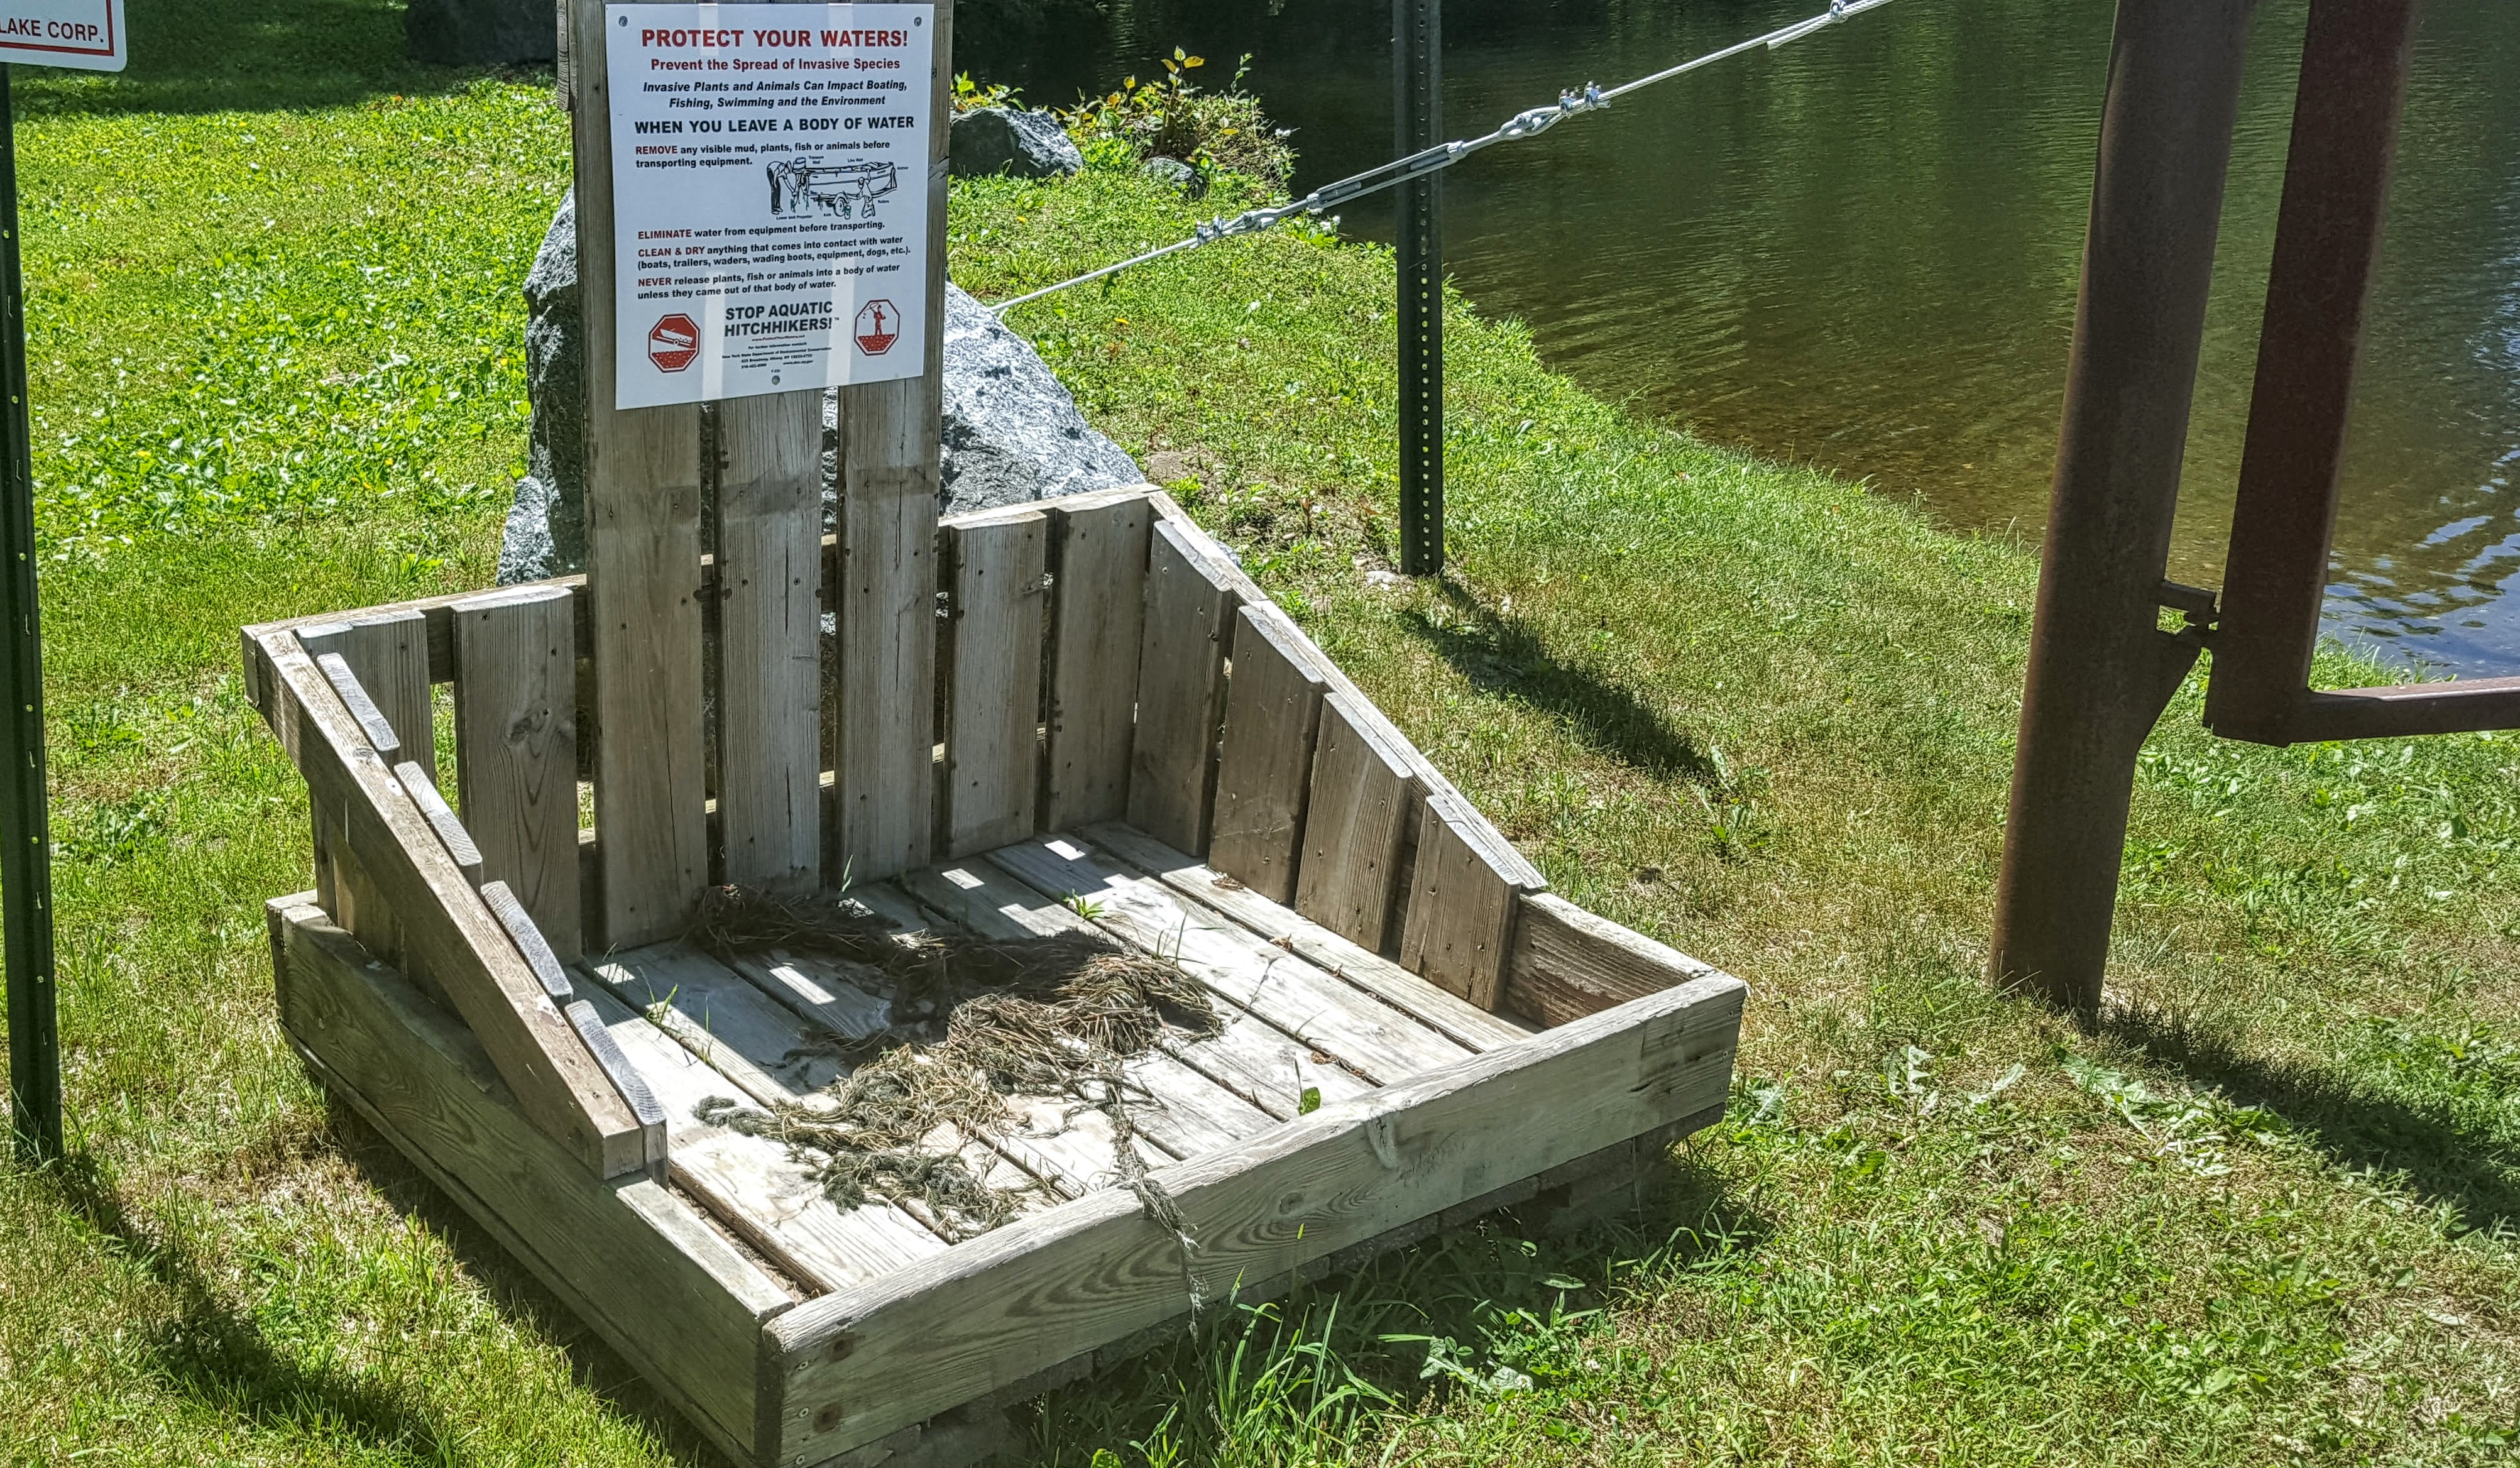 Check It Out! Thanks To Board Member Ken Bosen, We Have A Brand New  Invasive Species Disposal Station Next To The Access Gate At The Rt 28  Launch Site